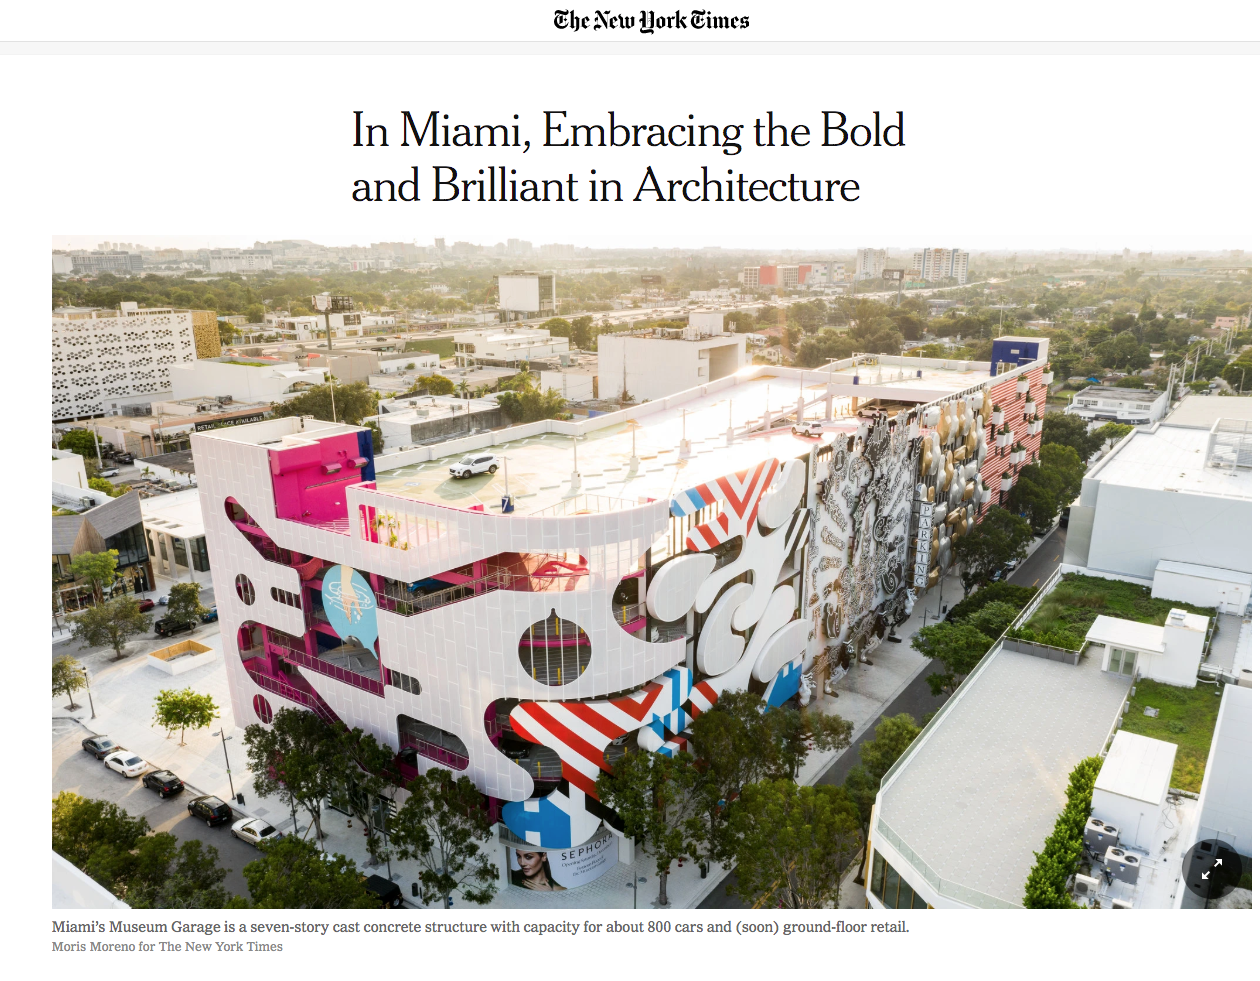 In Miami, Embracing the Bold and Brilliant in Architecture